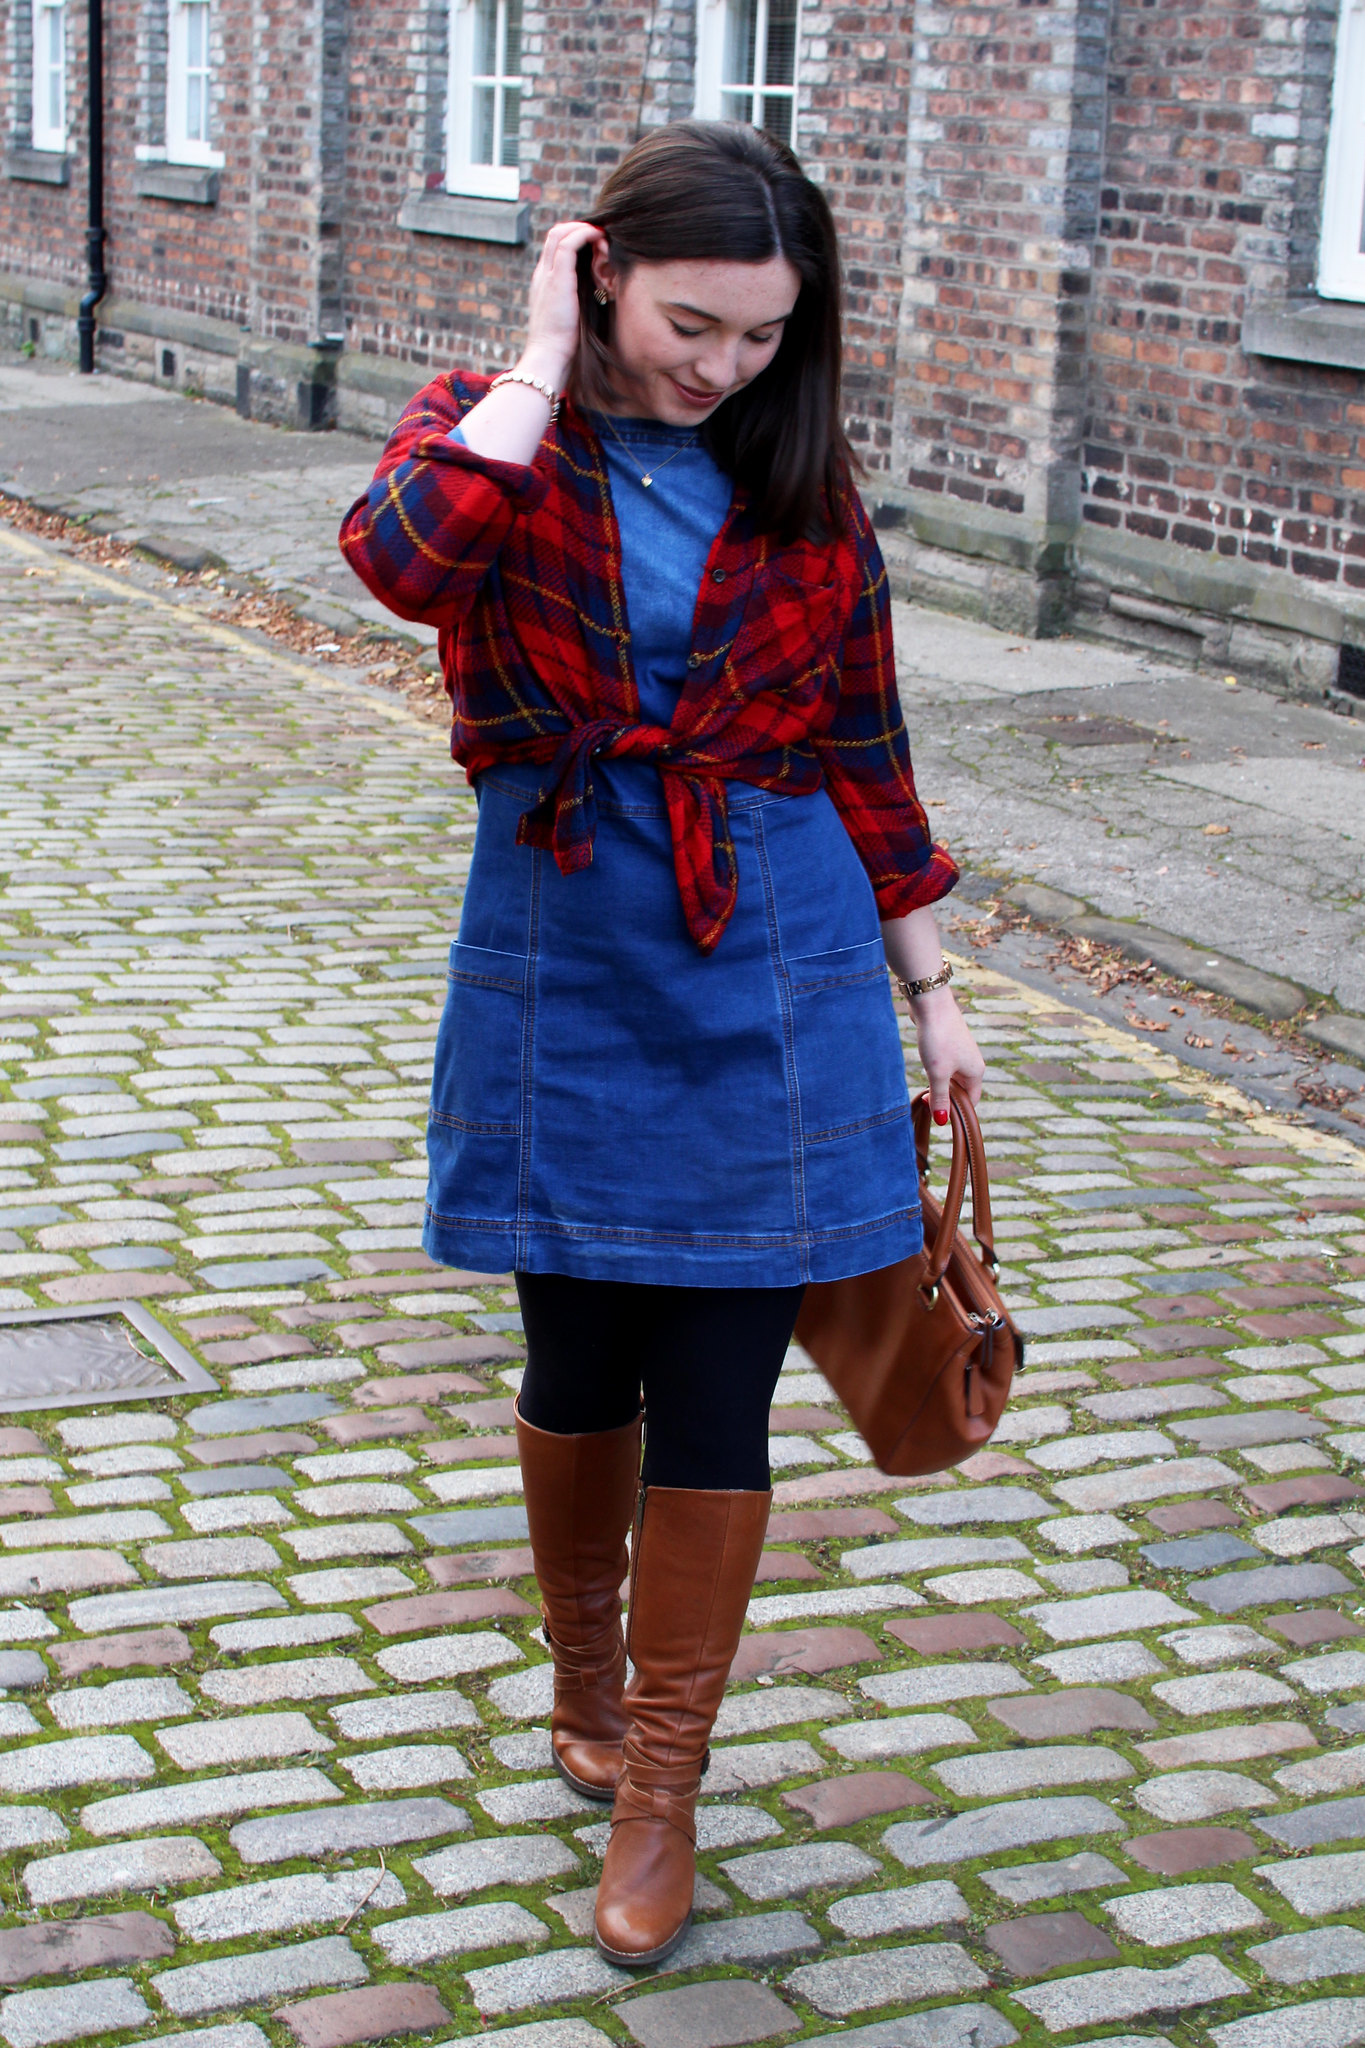 Fashion blogger UK Edinburgh Scotland The Little Things Autumn Fall Denim Dress Plaid